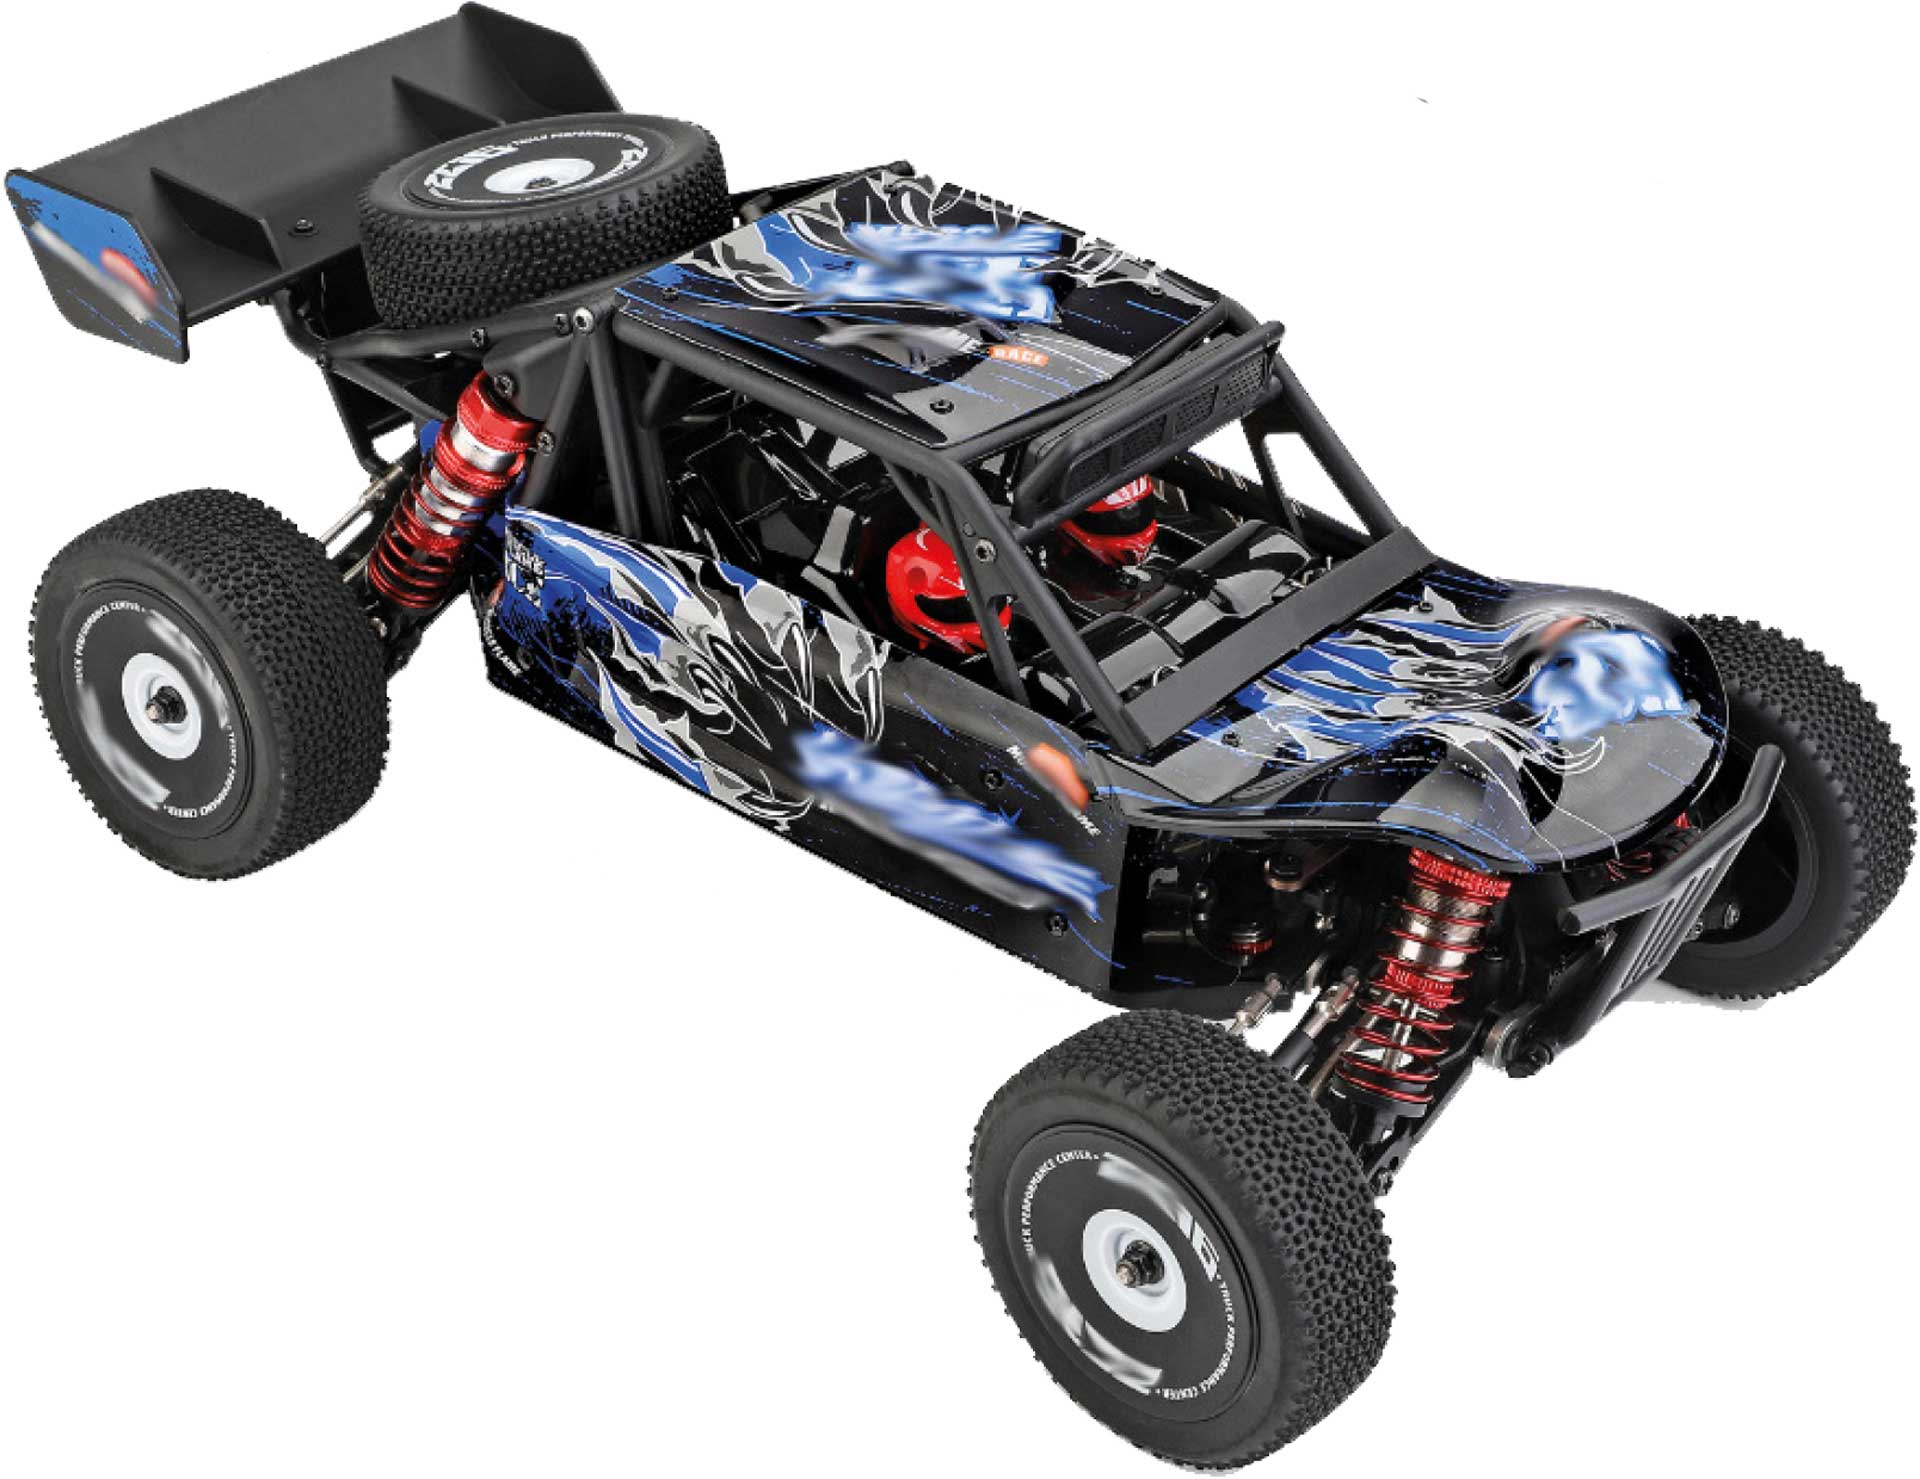 DRIVE & FLY MODELS DF-06 Evolution 1:12 RTR Truggy